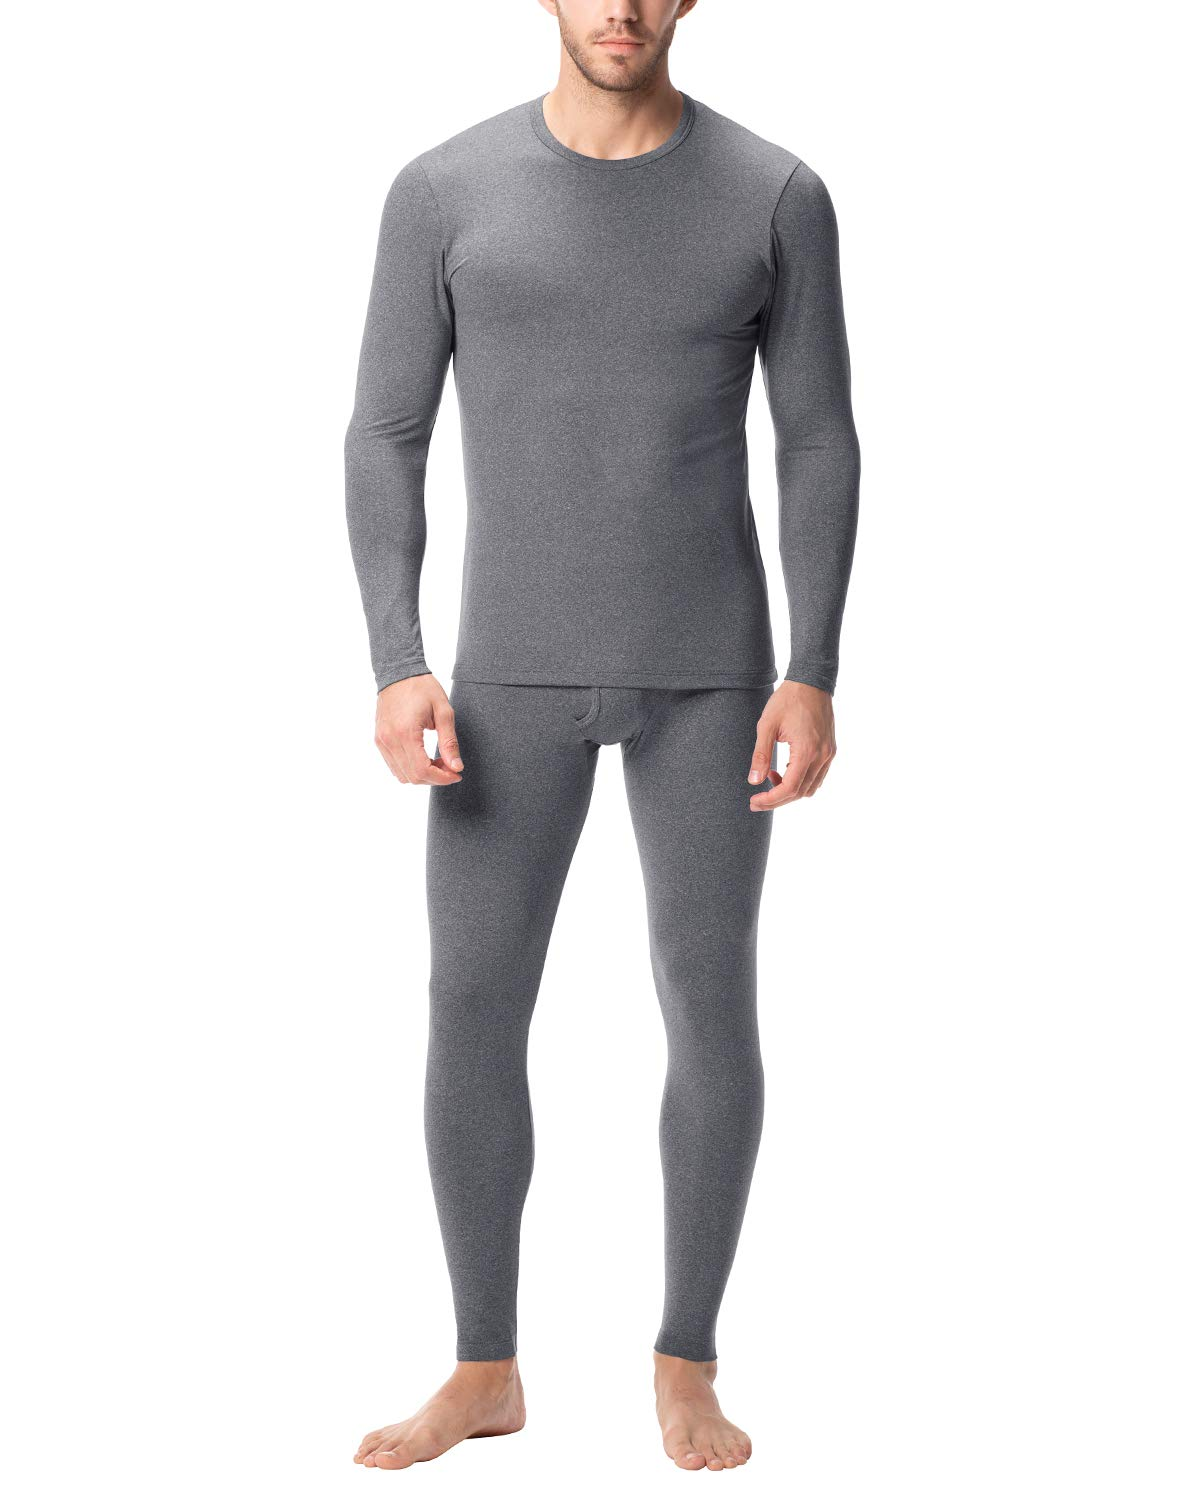 LAPASA Men's Midweight Thermal Underwear Long John Set Fleece Lined Base Layer Top and Bottom M57 (XX-Large, Midweight Dark Grey) by LAPASA